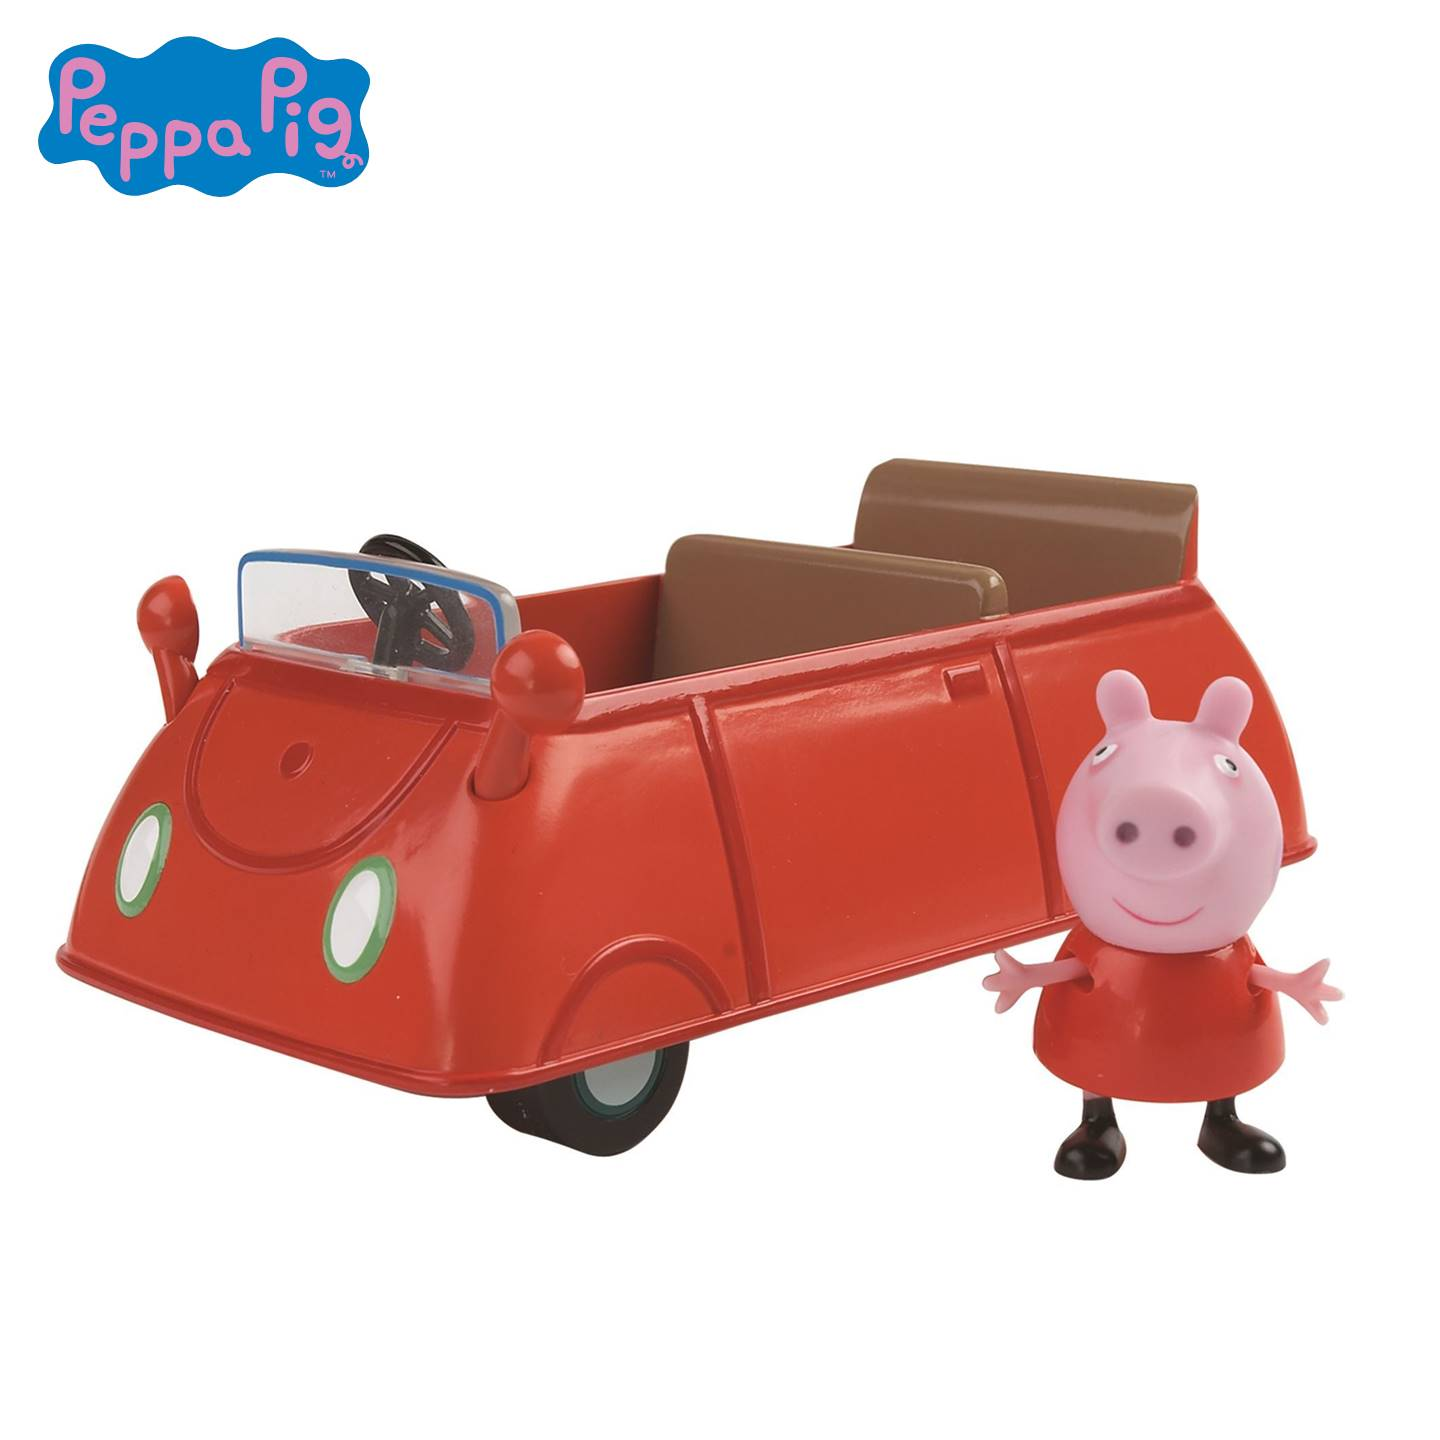 PP120605900000 Peppa Pig'S Vehicle Famaily Car (3)